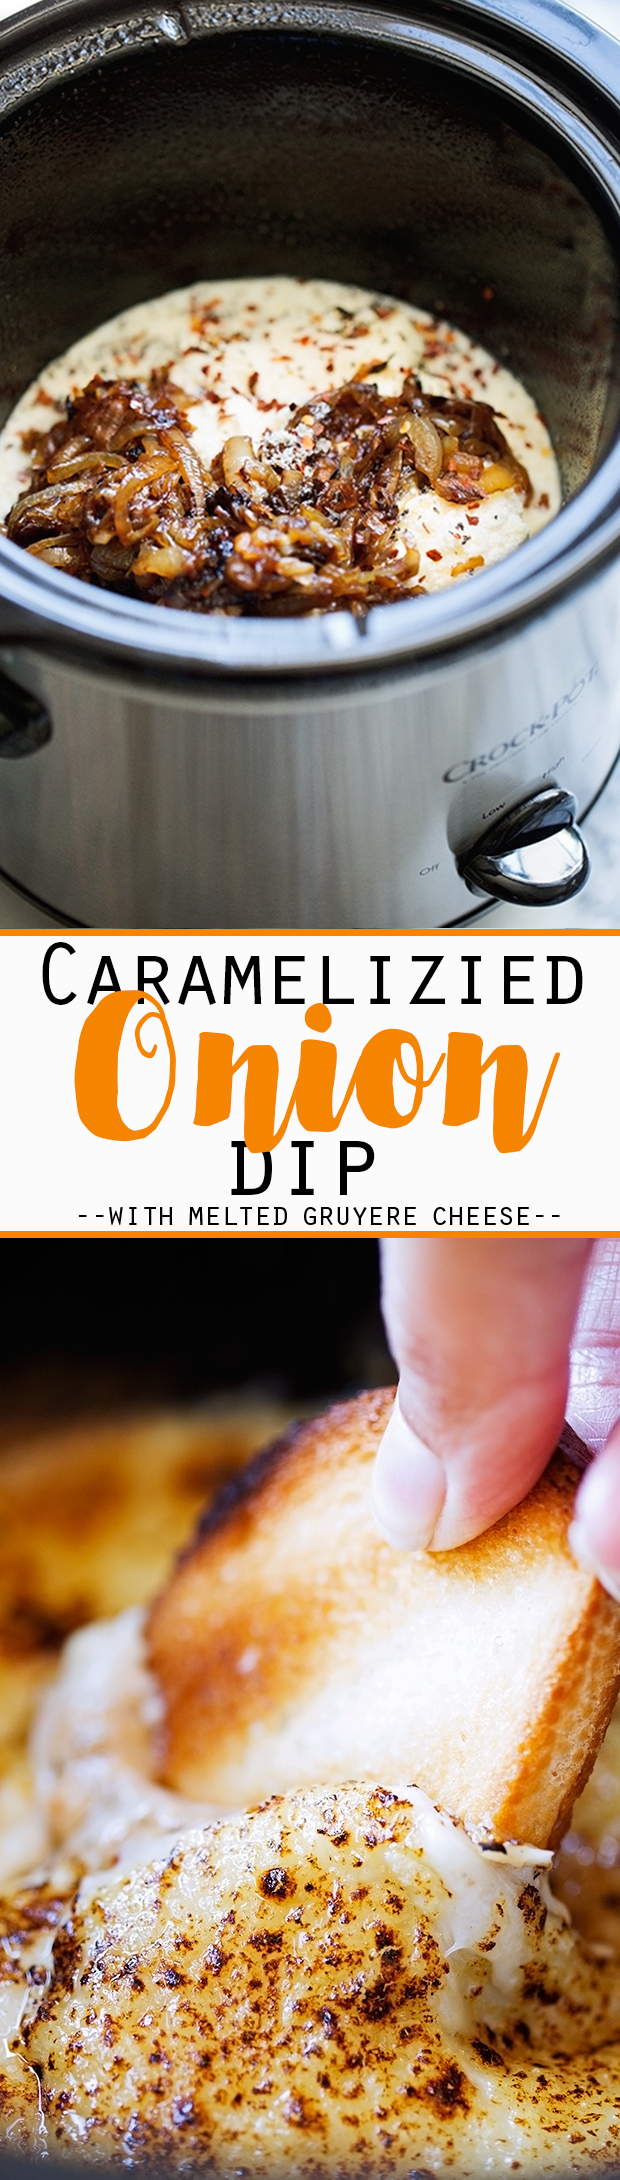 Hot Caramelized Onion Dip {Slow Cooker} - An easy dip to serve to party guests! The crowd WILL go wild! #caramelizedonions #dip #oniondip #slowcooker | Littlespicejar.com